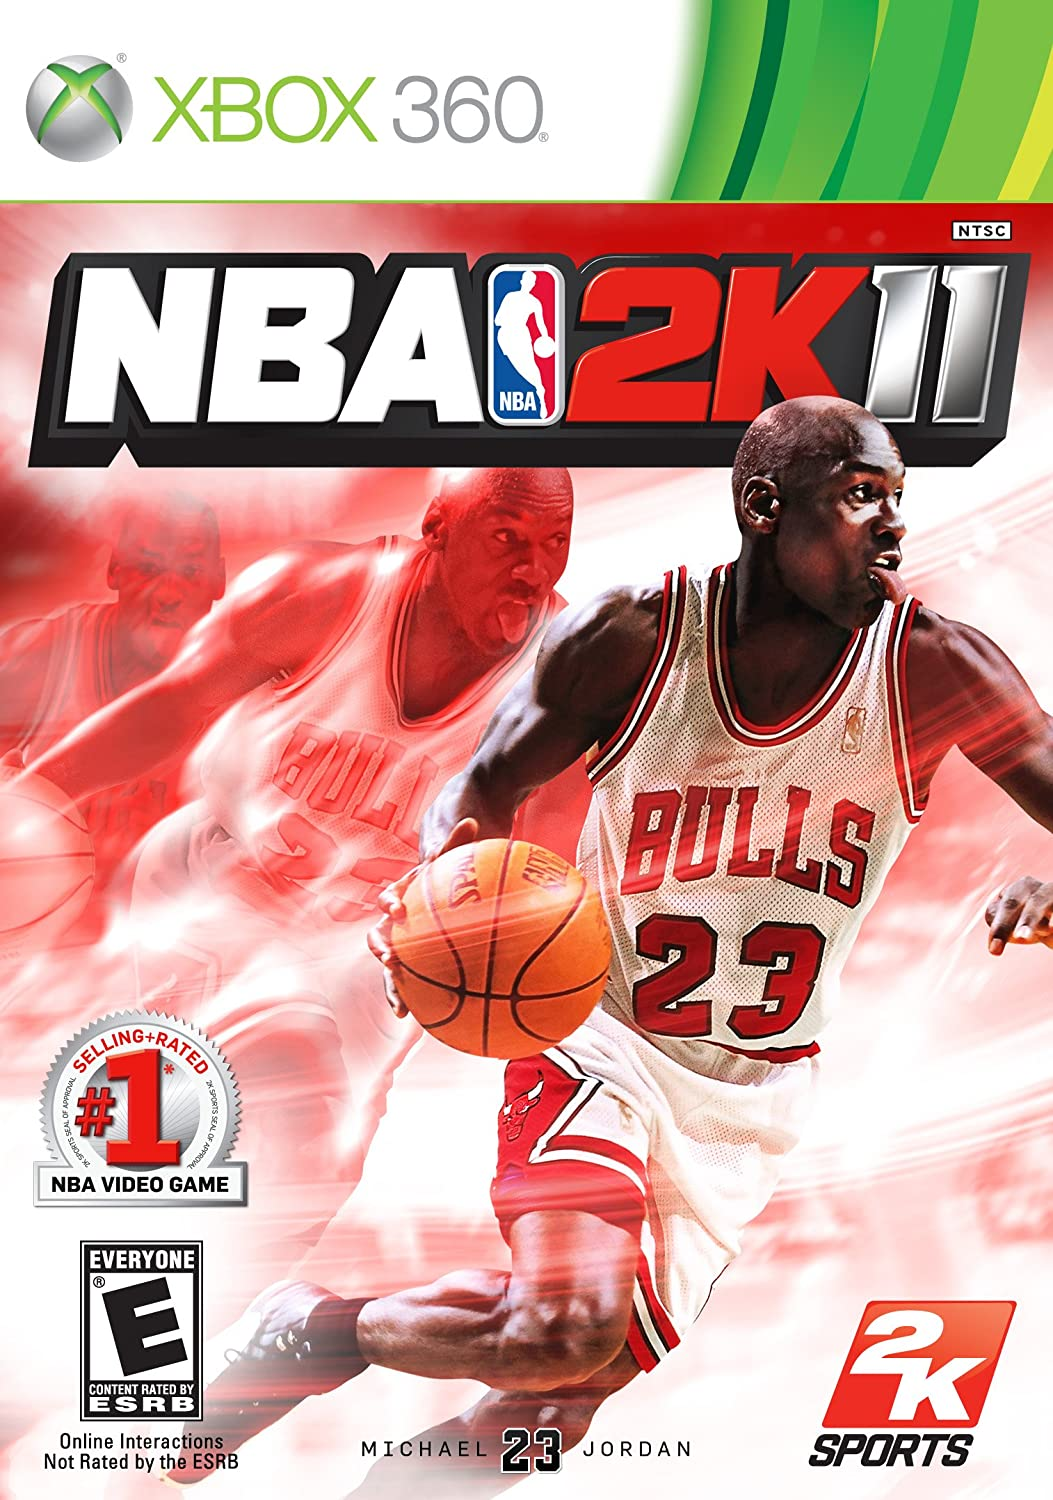 Max 46% OFF Ranking integrated 1st place NBA 2K11 - 360 Xbox